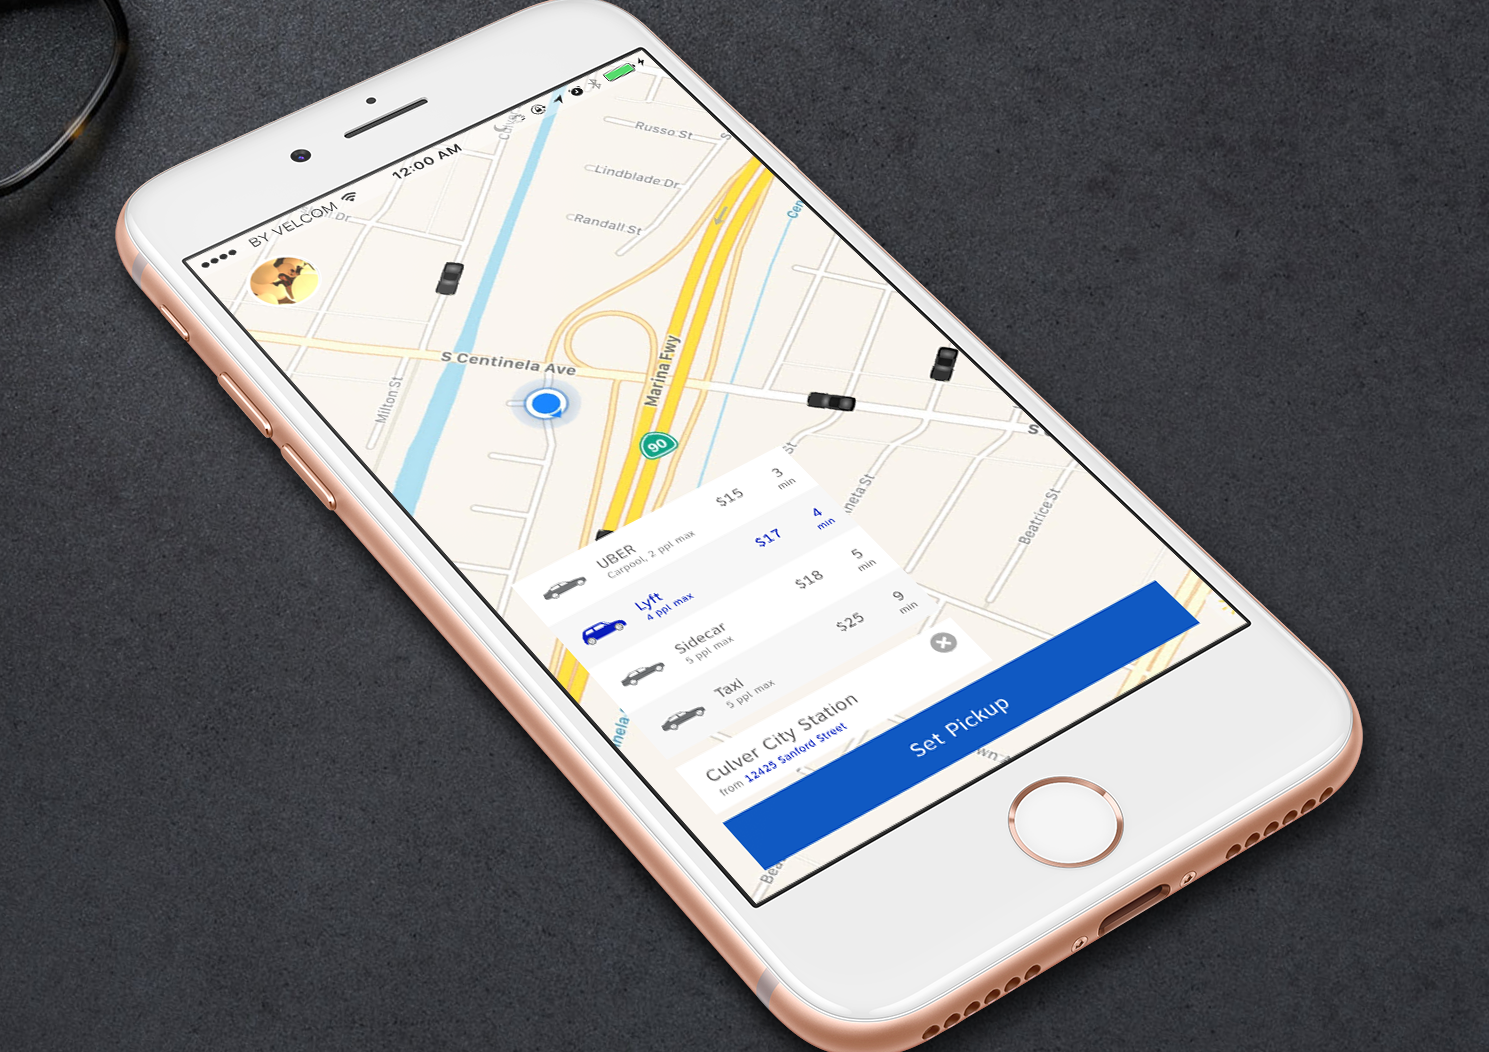 Ride Wizard - An app that compares fares amongst ride services so that users can find the best price conveniently.